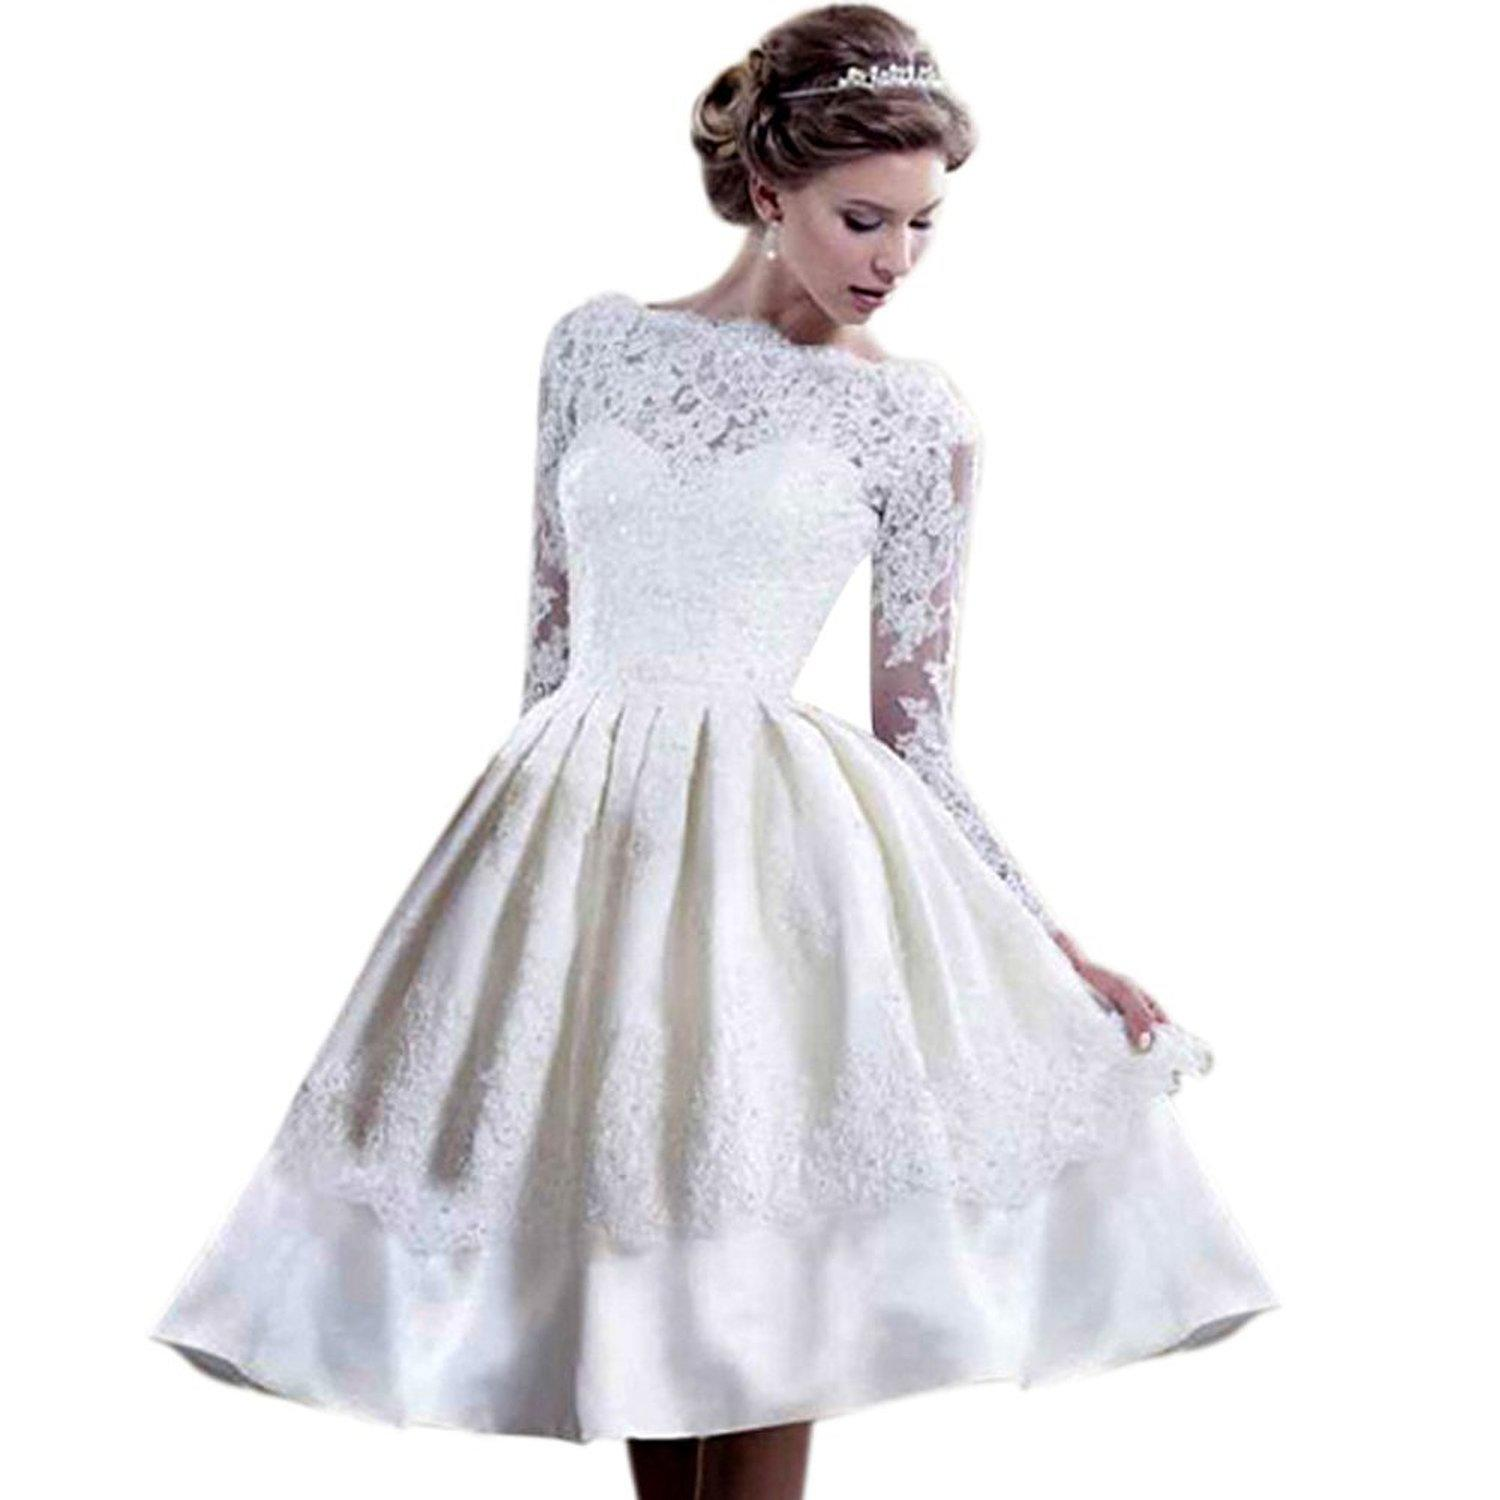 Ropalia white wedding short prom dress from amazon paper for Amazon dresses for weddings